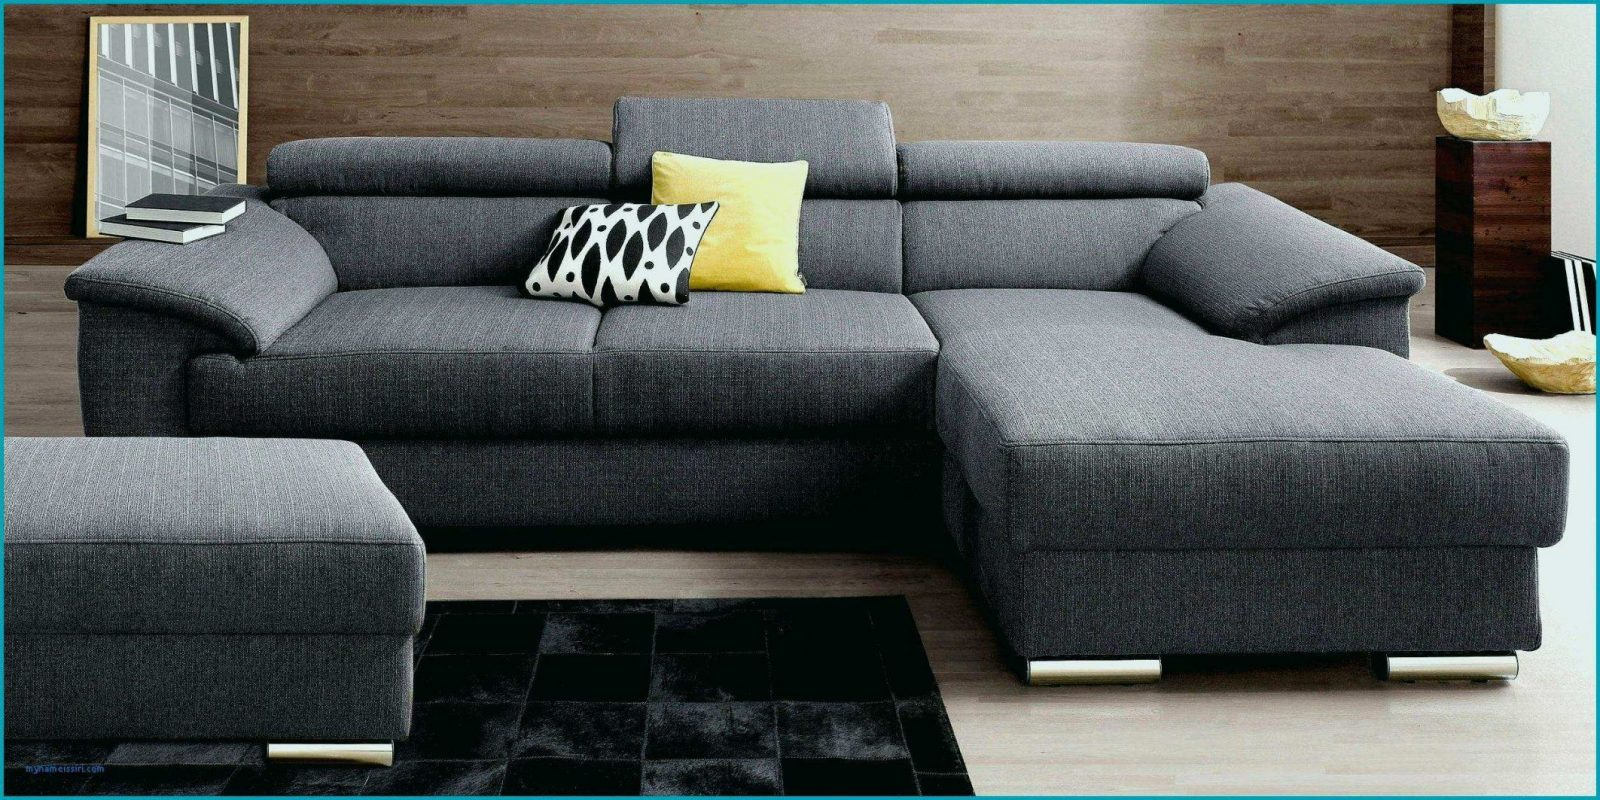 otto sofas mit bettfunktion luxury 30 einzigartig sofa bei. Black Bedroom Furniture Sets. Home Design Ideas